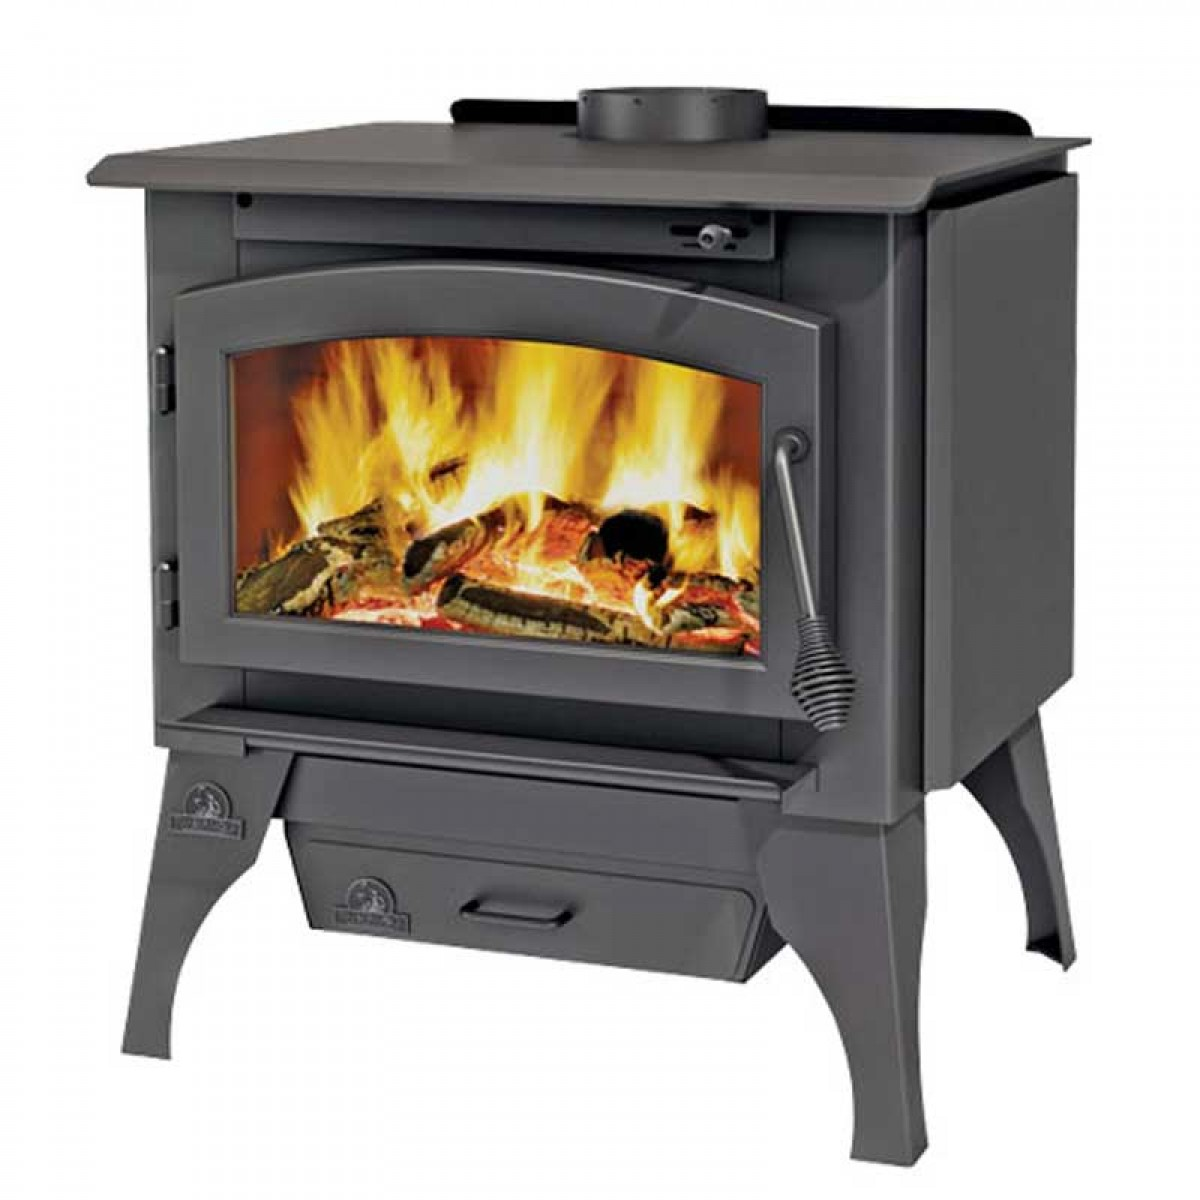 Napoleon Timberwolf Economizer 2100/2200 Wood Burning Stove c/w door  painted black - Timberwolf Economizer 2100/2200 Small Wood Burning Stove C/w Door